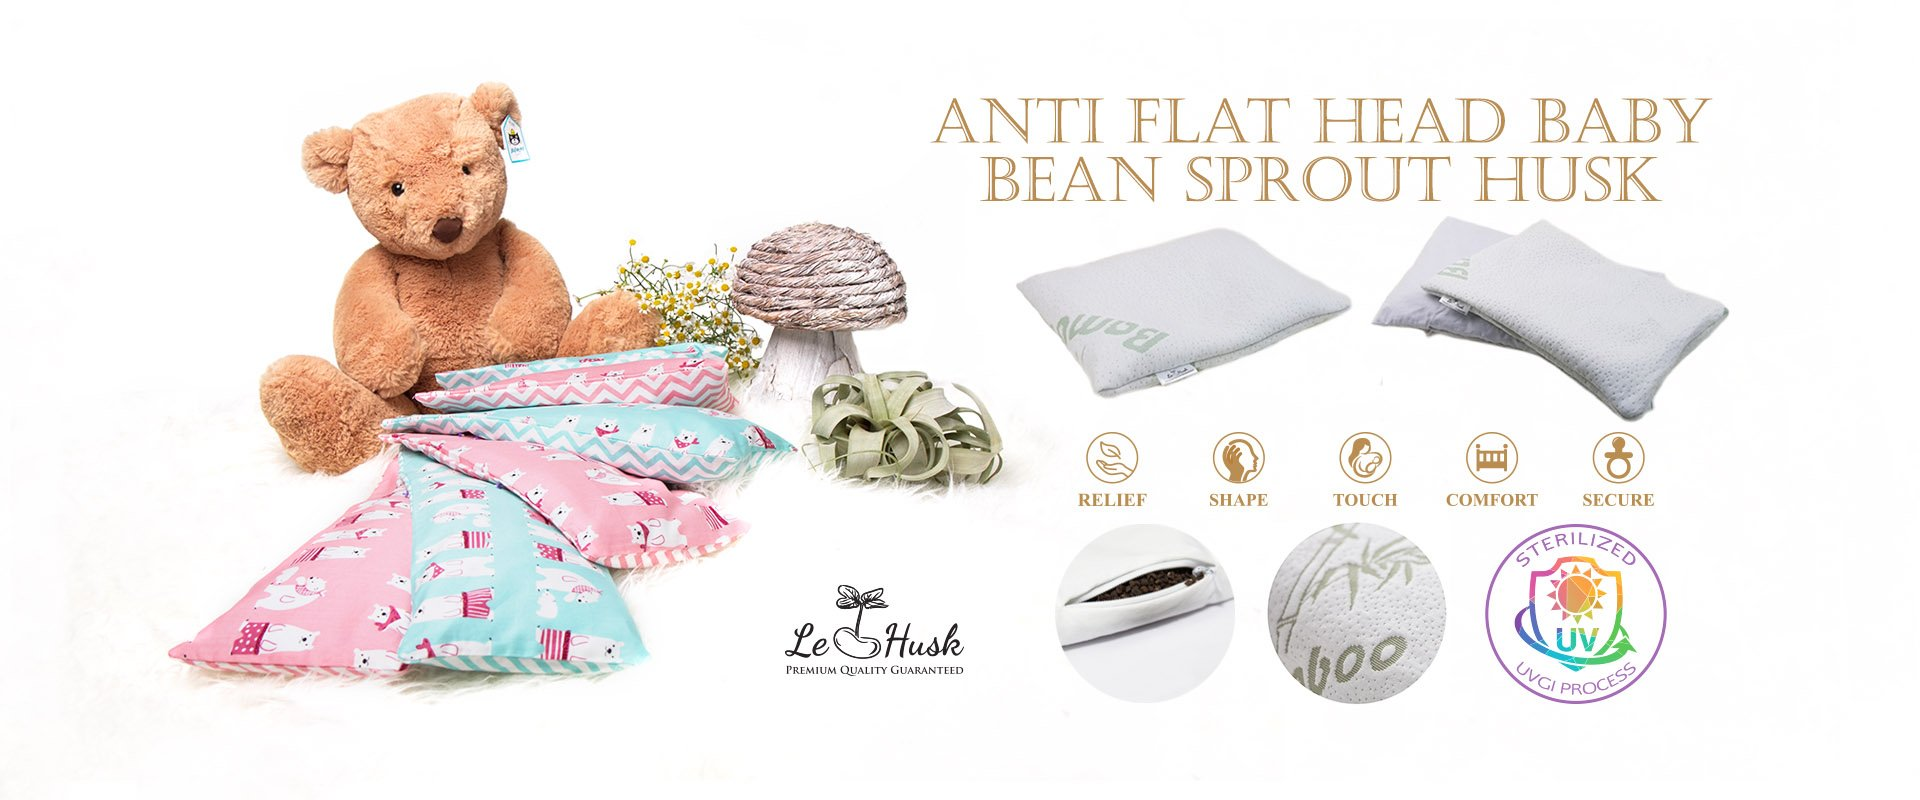 Ergonomic Bean Sprout Husk Pillow